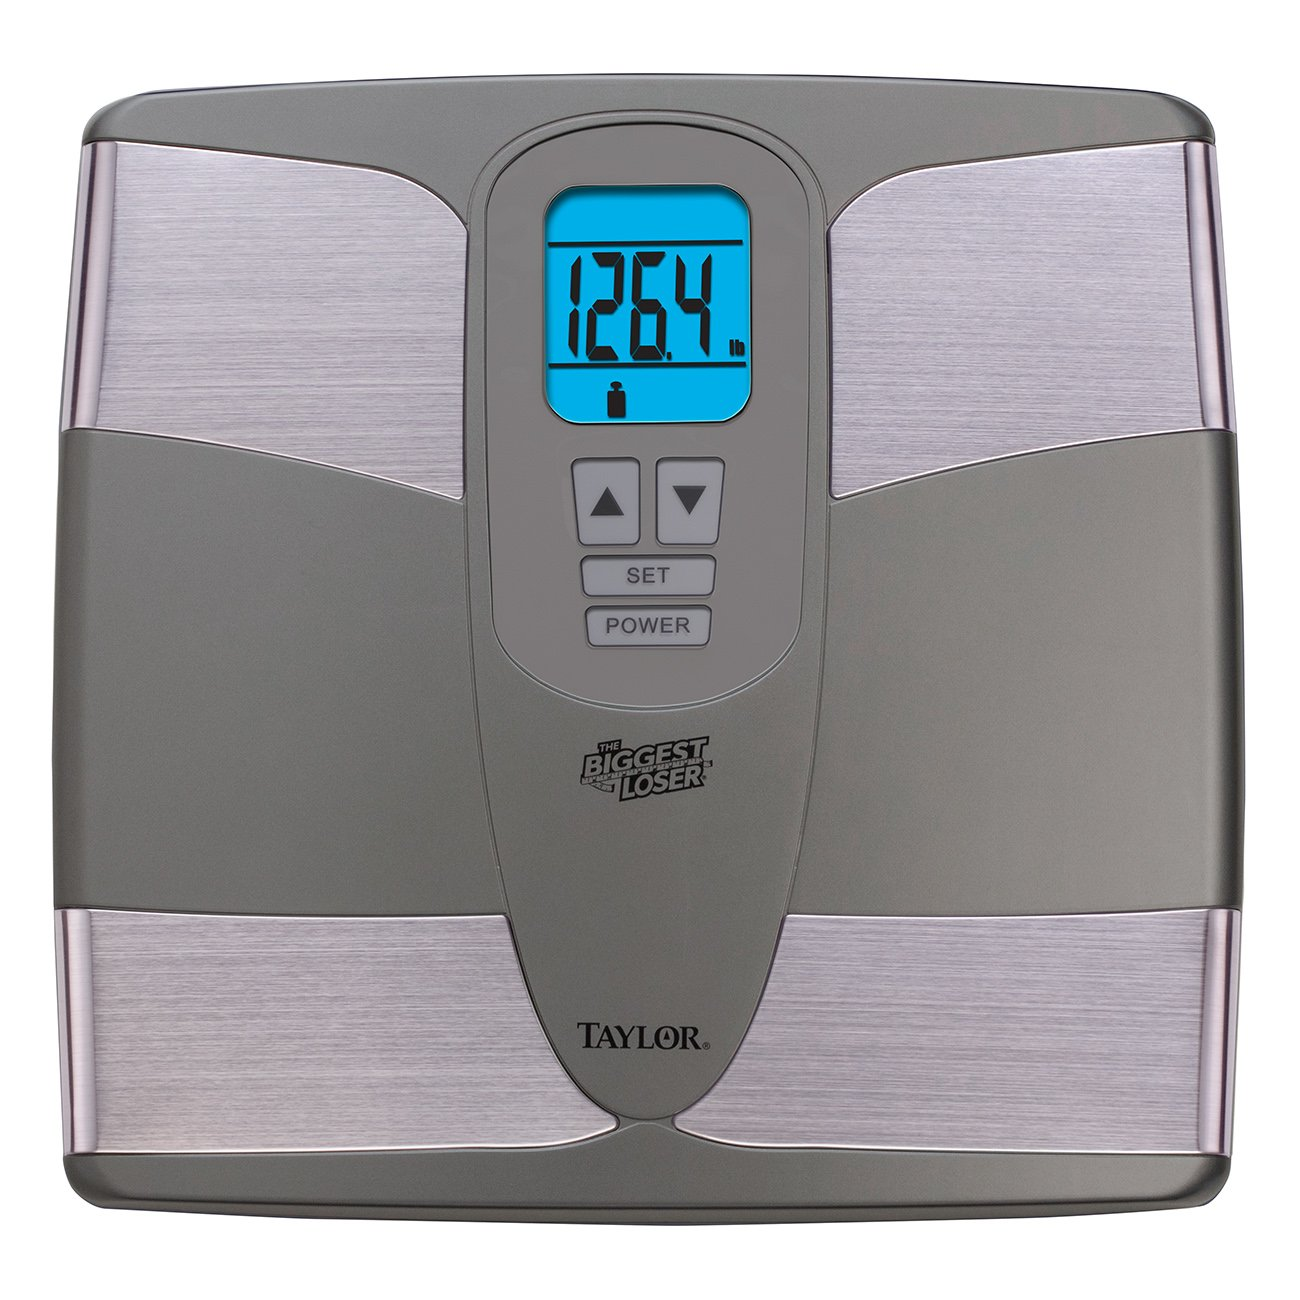 Taylor Precision Products The Biggest Loser Body Fat Analyzer Scale